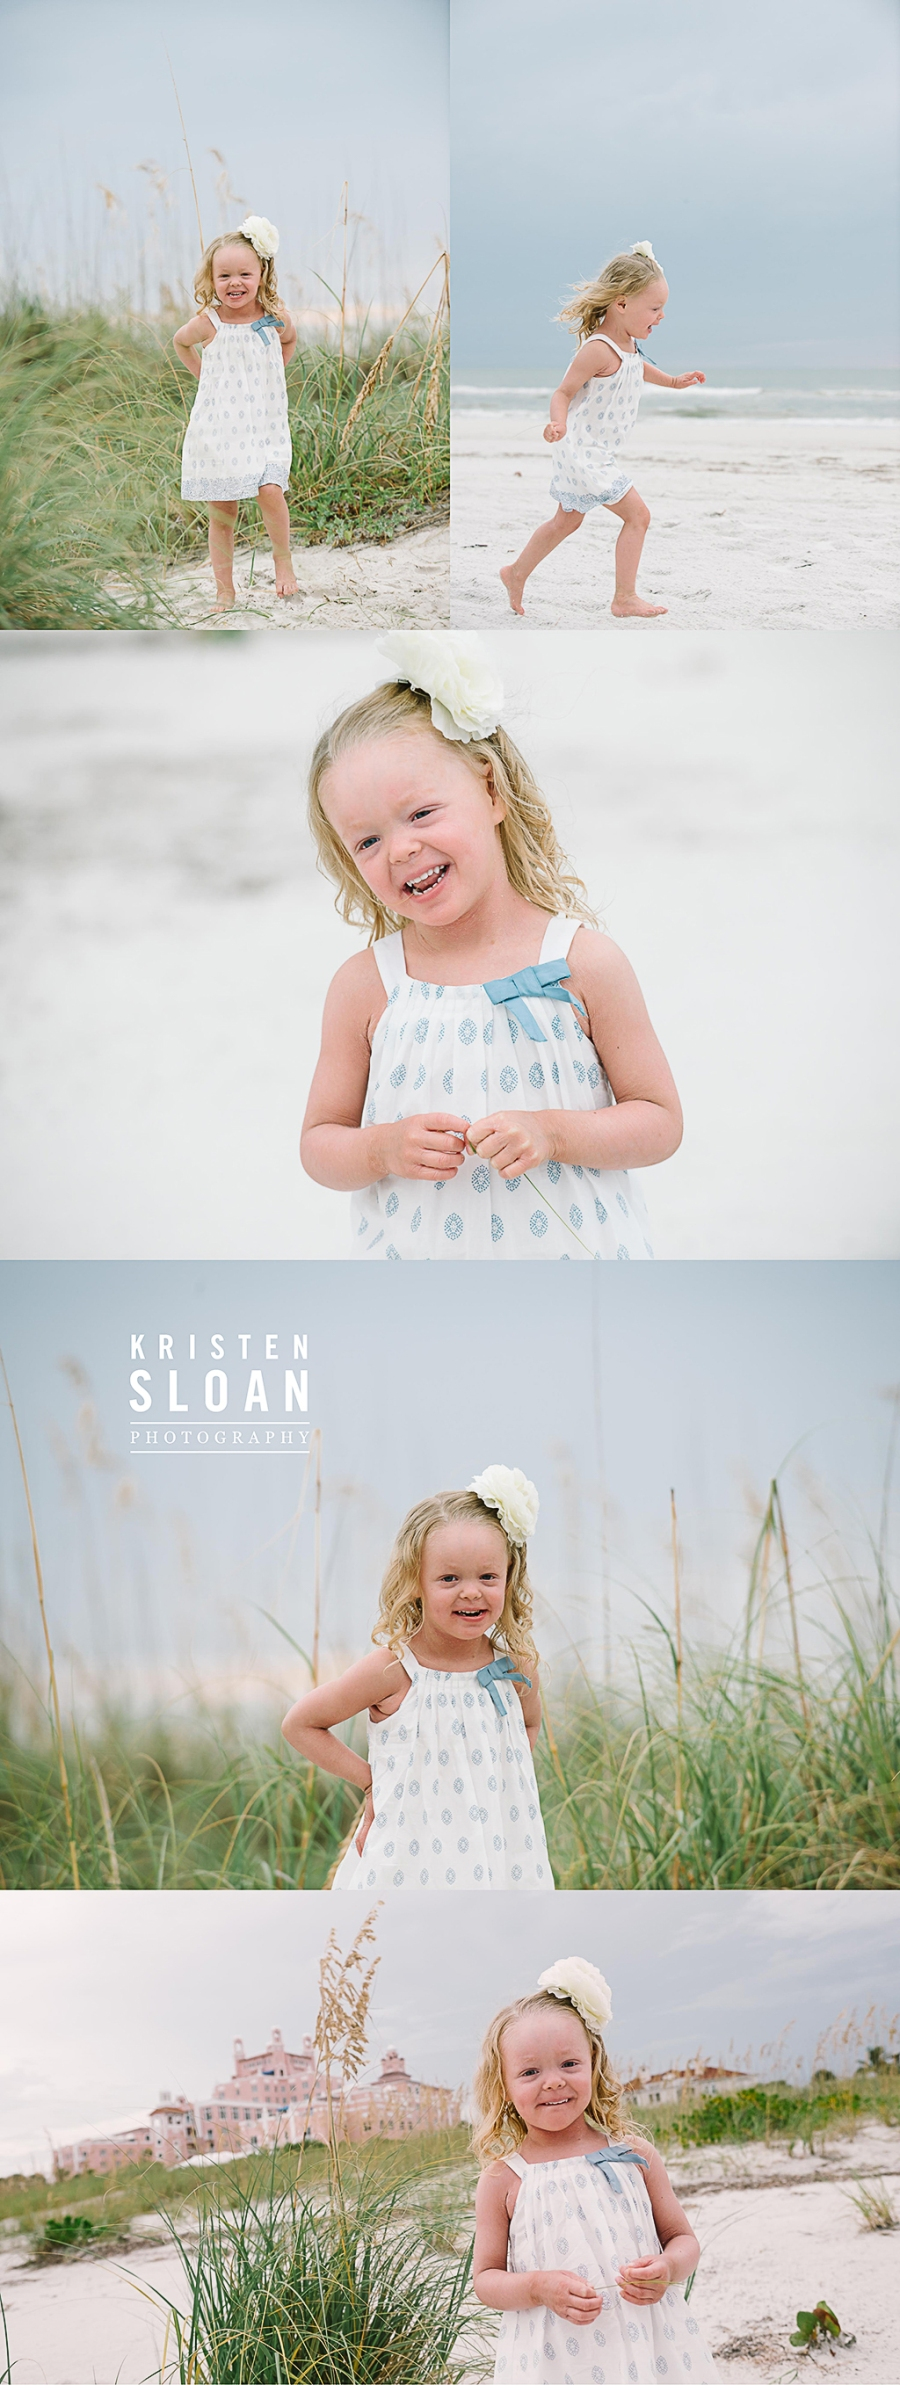 Don Cesar Hotel Beach Family Portraits at Sunset by Kristen Sloan